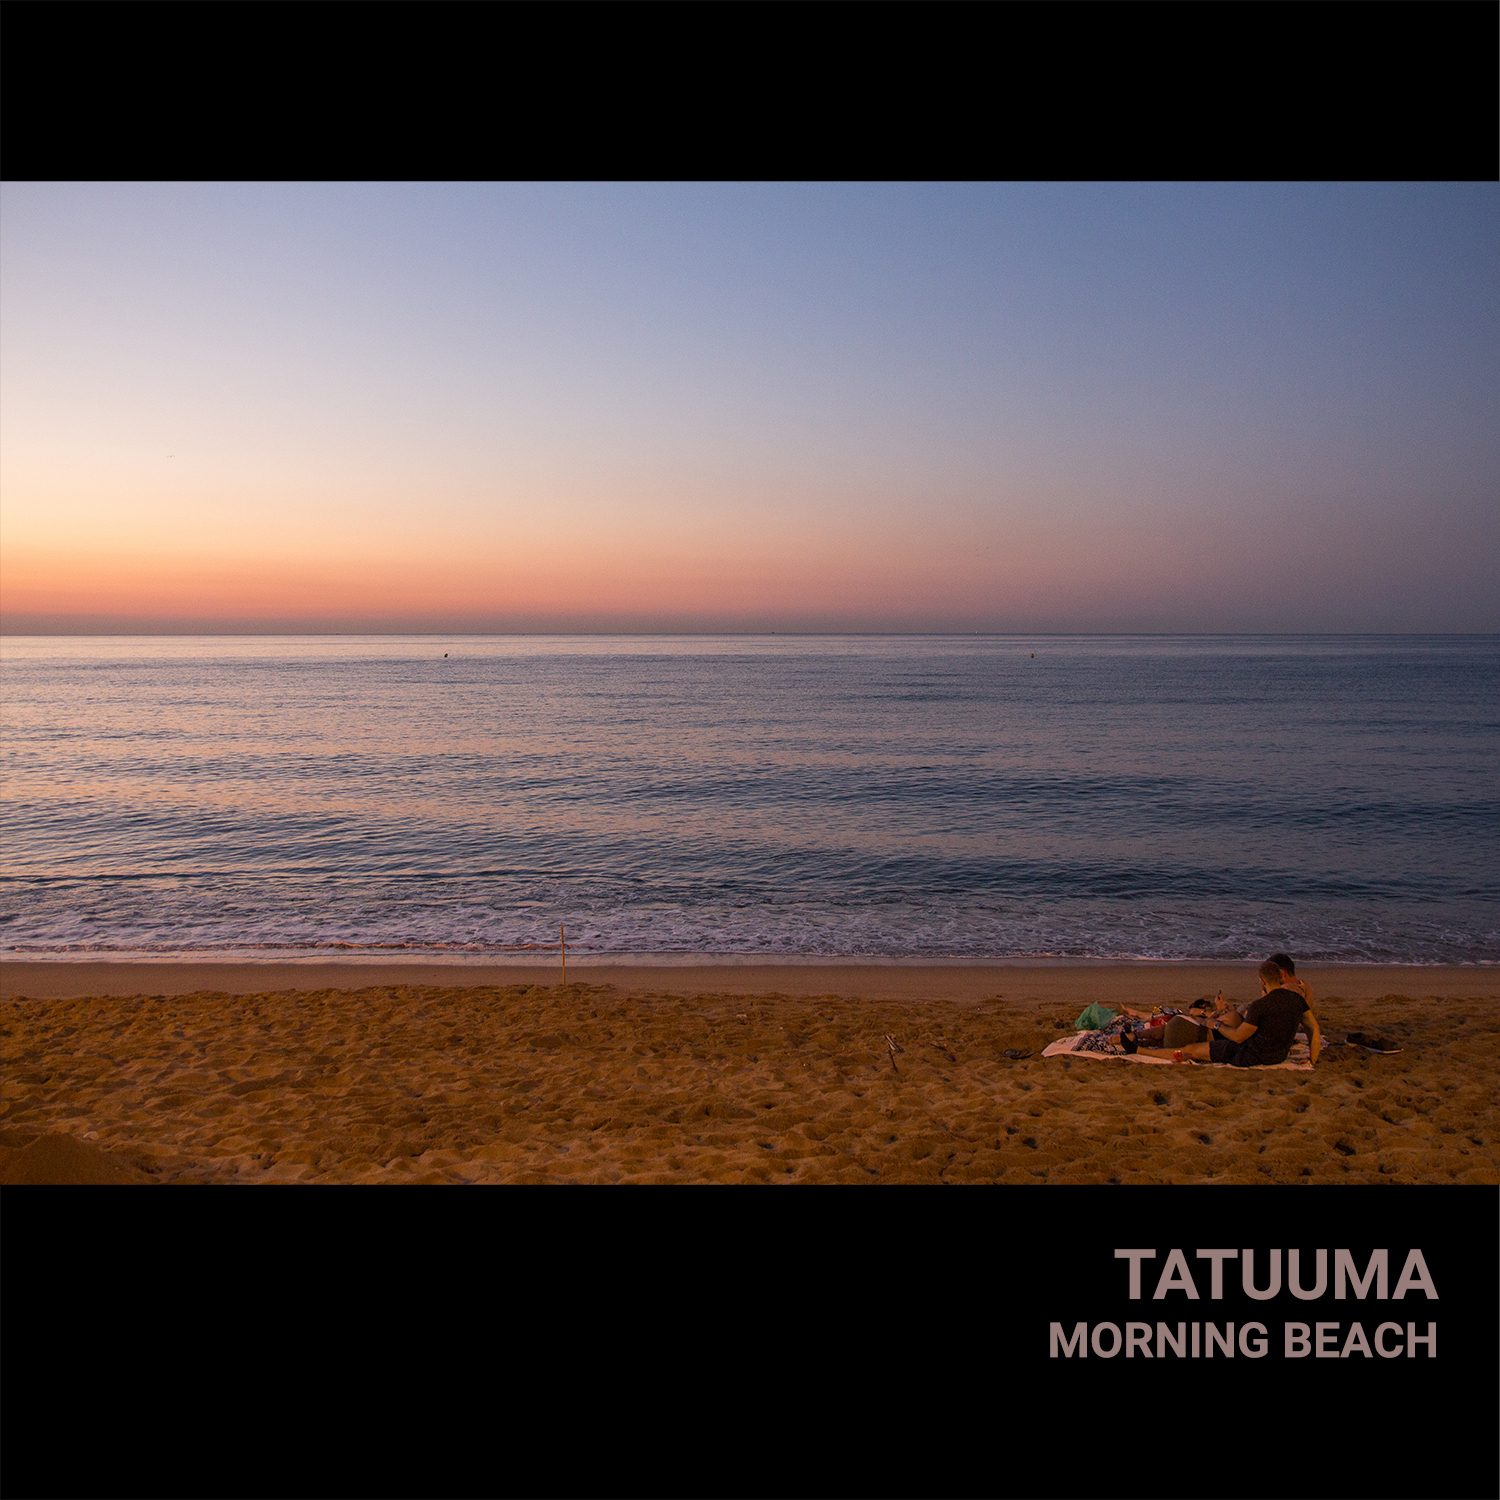 morning beach essay This 300 woods essay presents the memory of a girl near hawaii sea beach the language of the essay is advance 1i get up very early in the morning 2i clean my teeth 3then i take my bath.